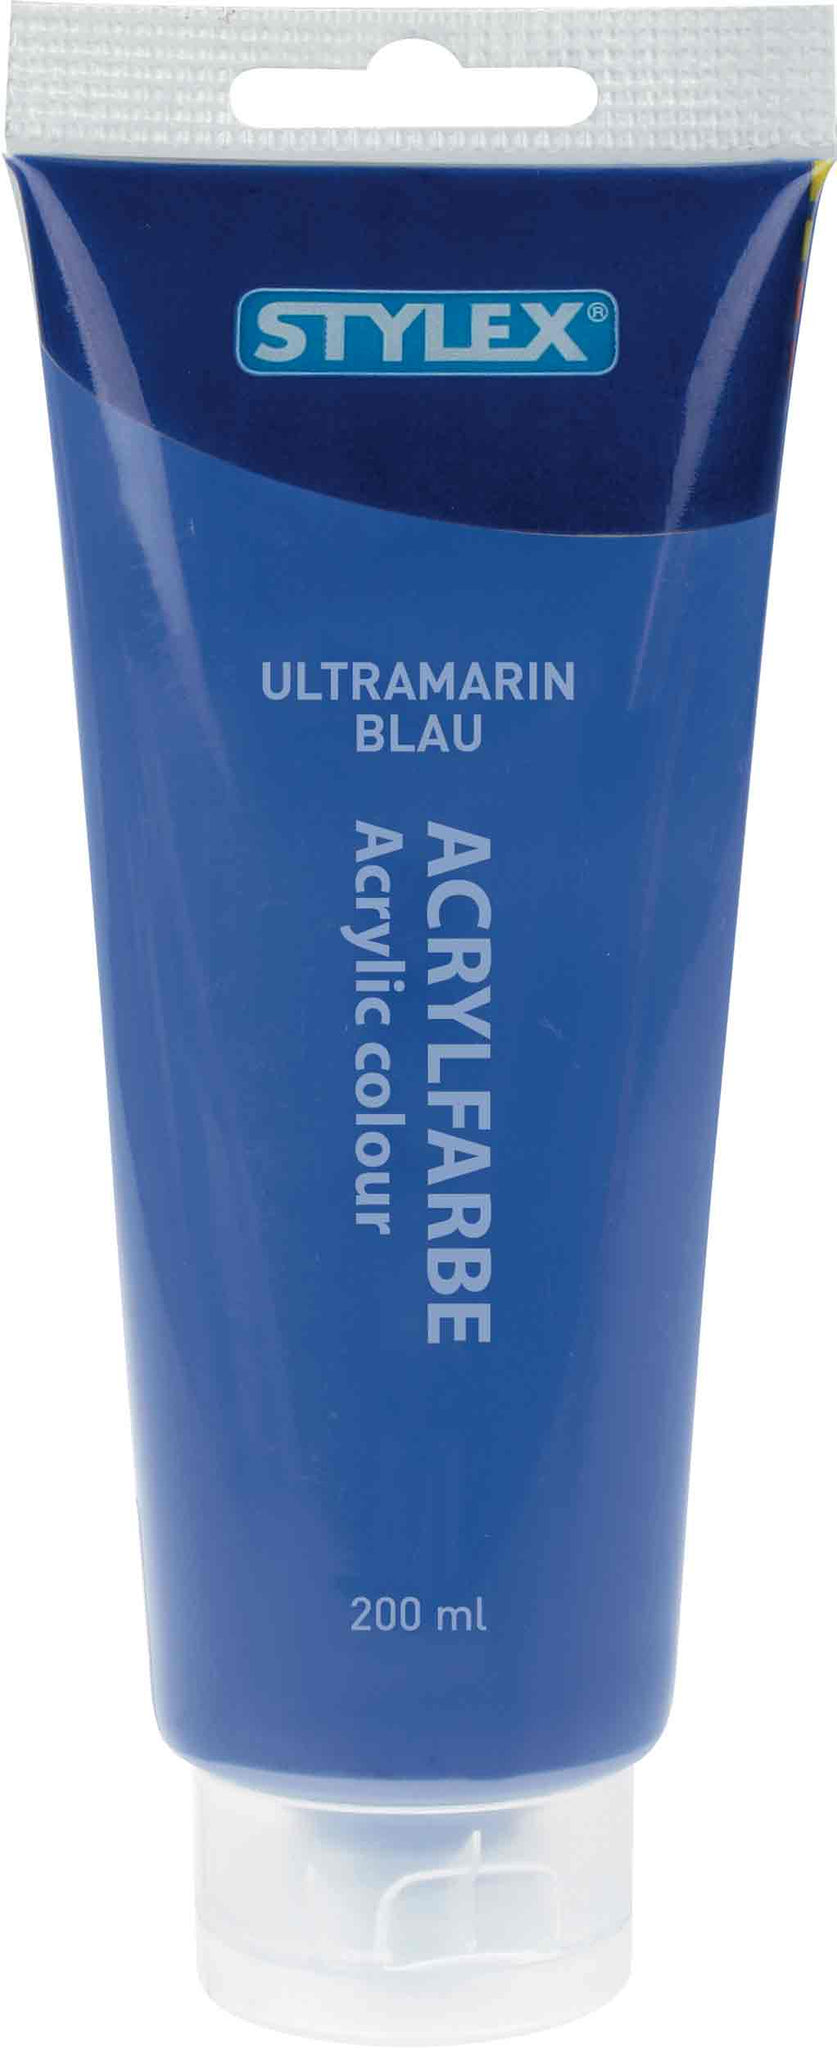 STYLEX Acrylfarbe 200 ml, Ultramarinblau